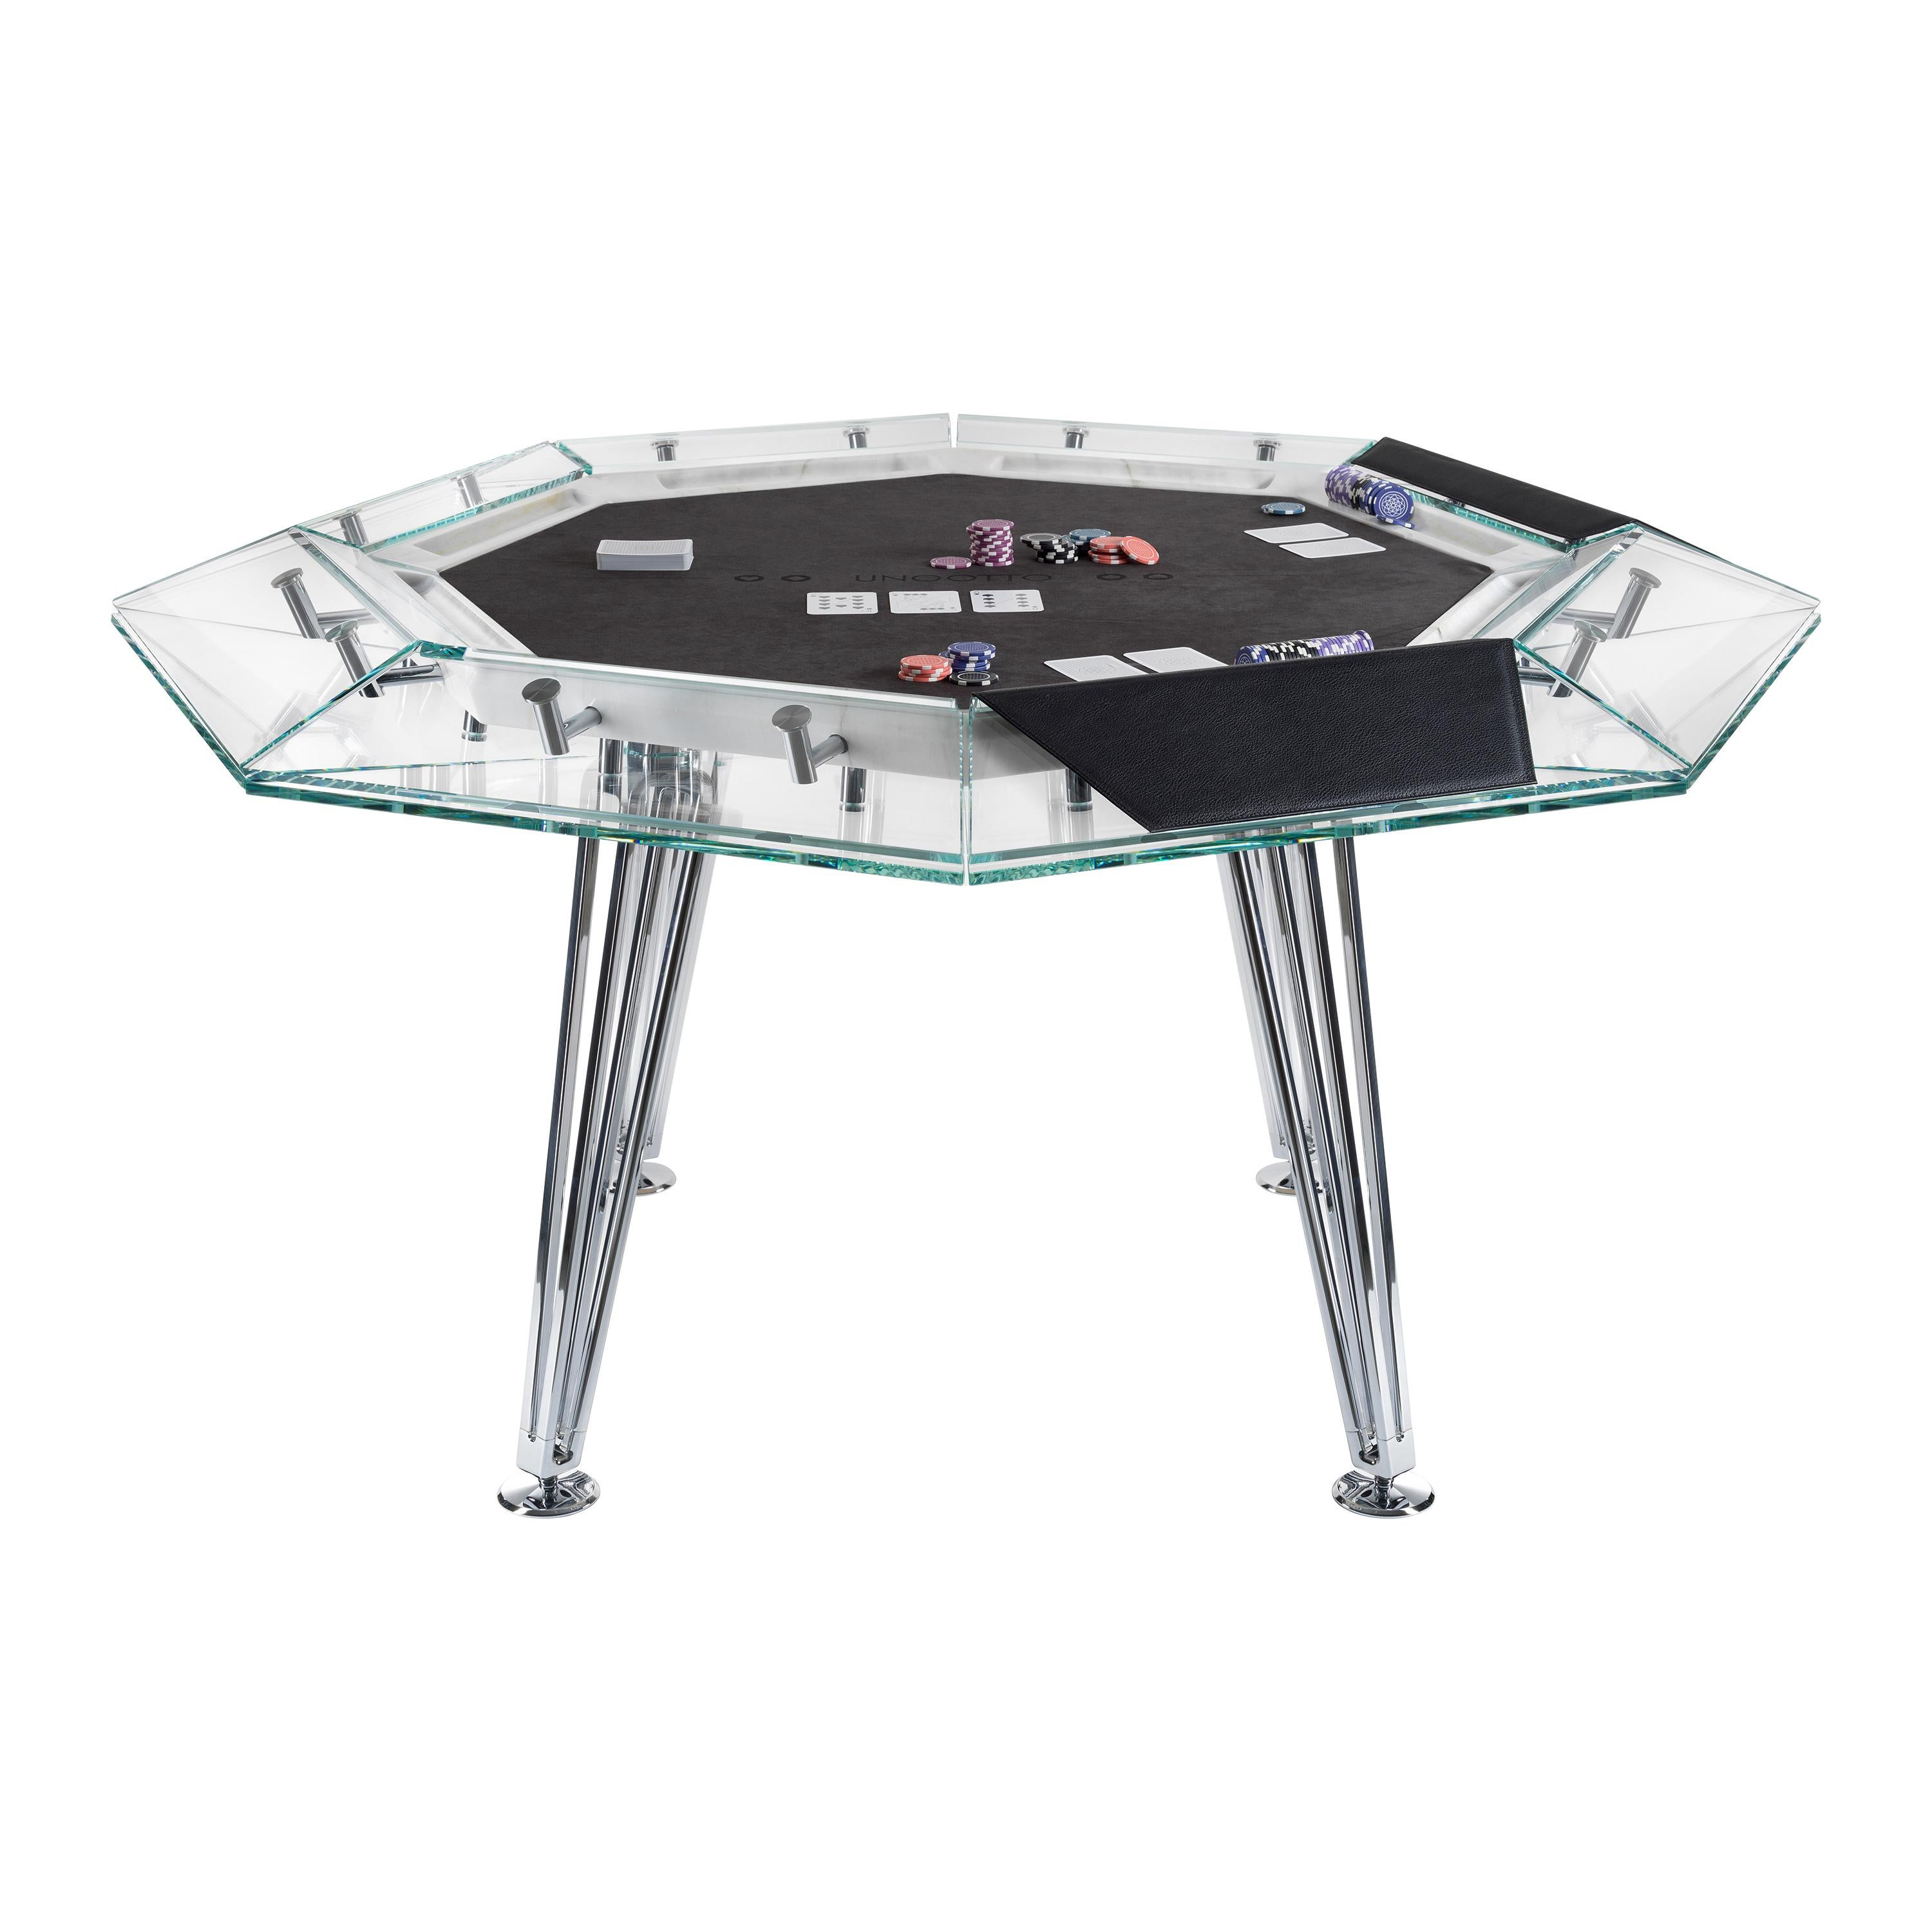 Unootto Marble Edition, 8 Player Poker Table, by Impatia